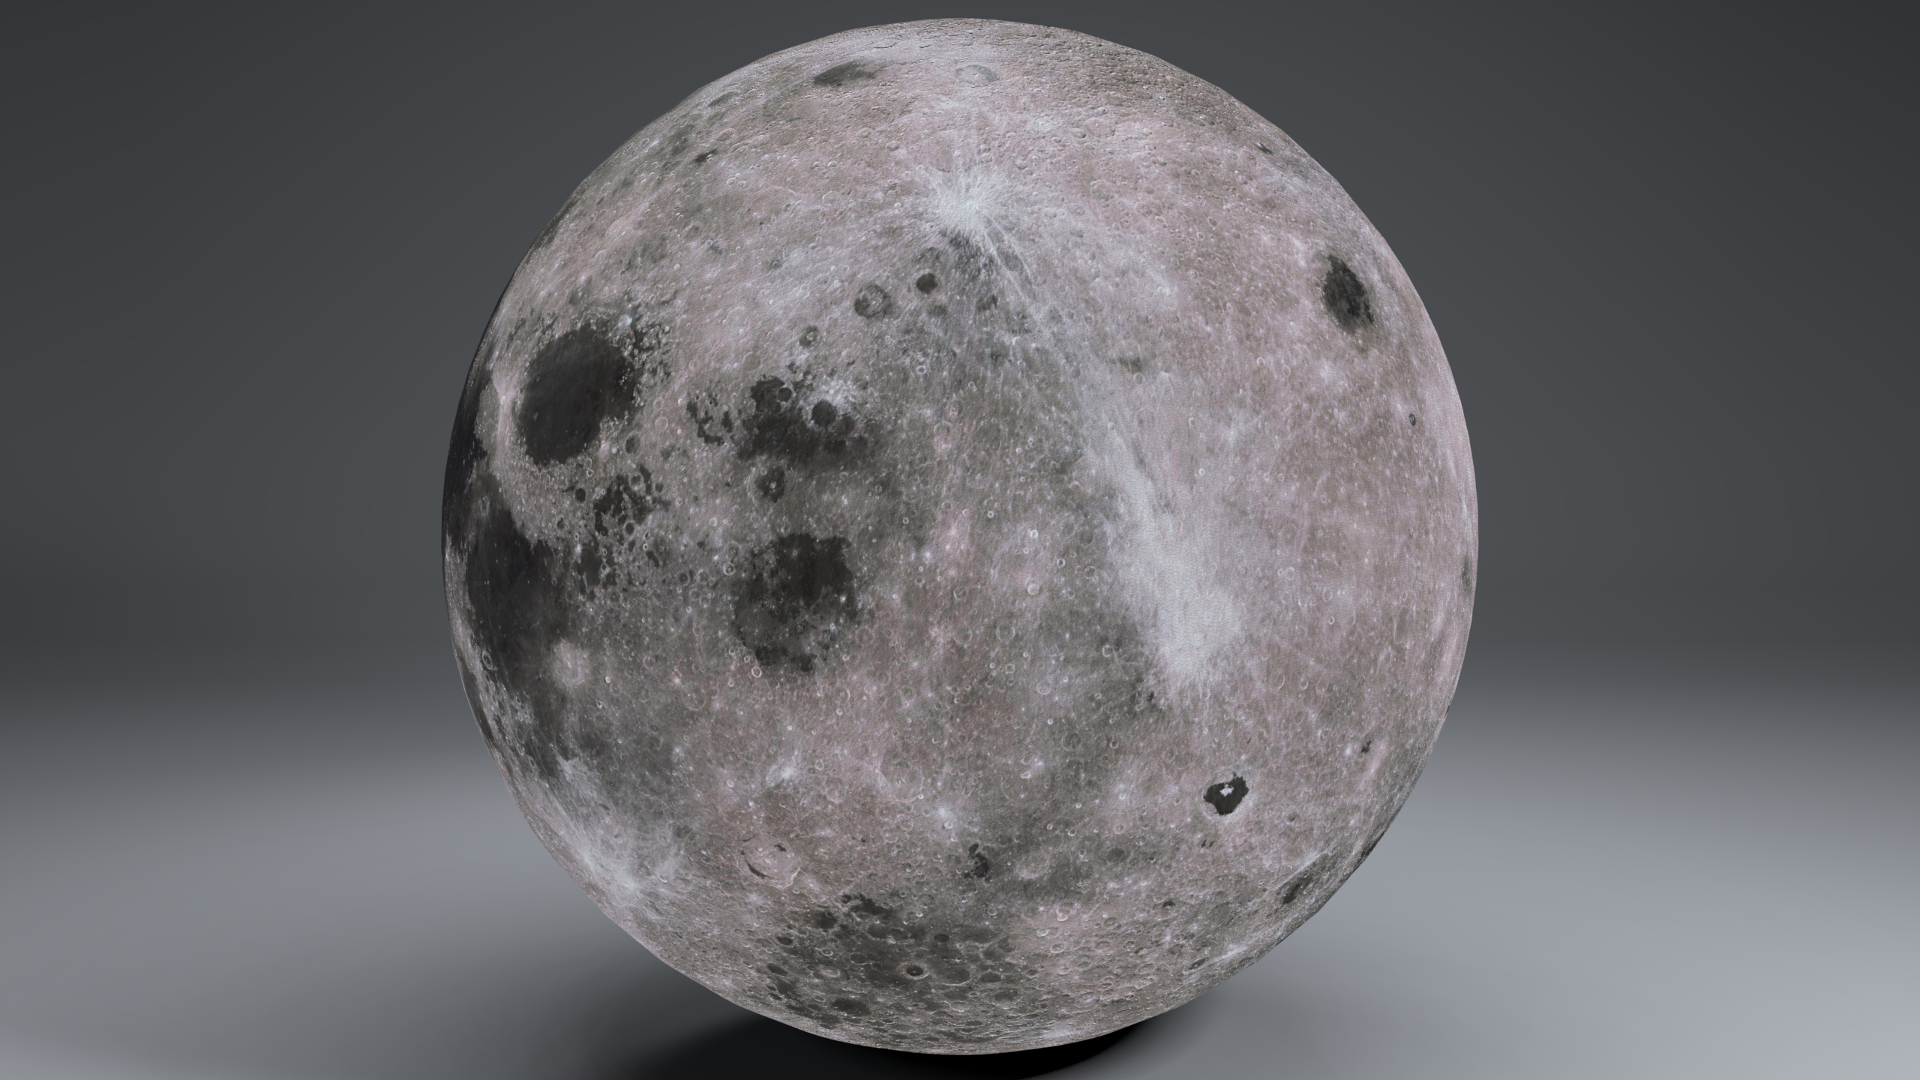 moonglobe 8k 3d model 3ds fbx blend dae obj 221869